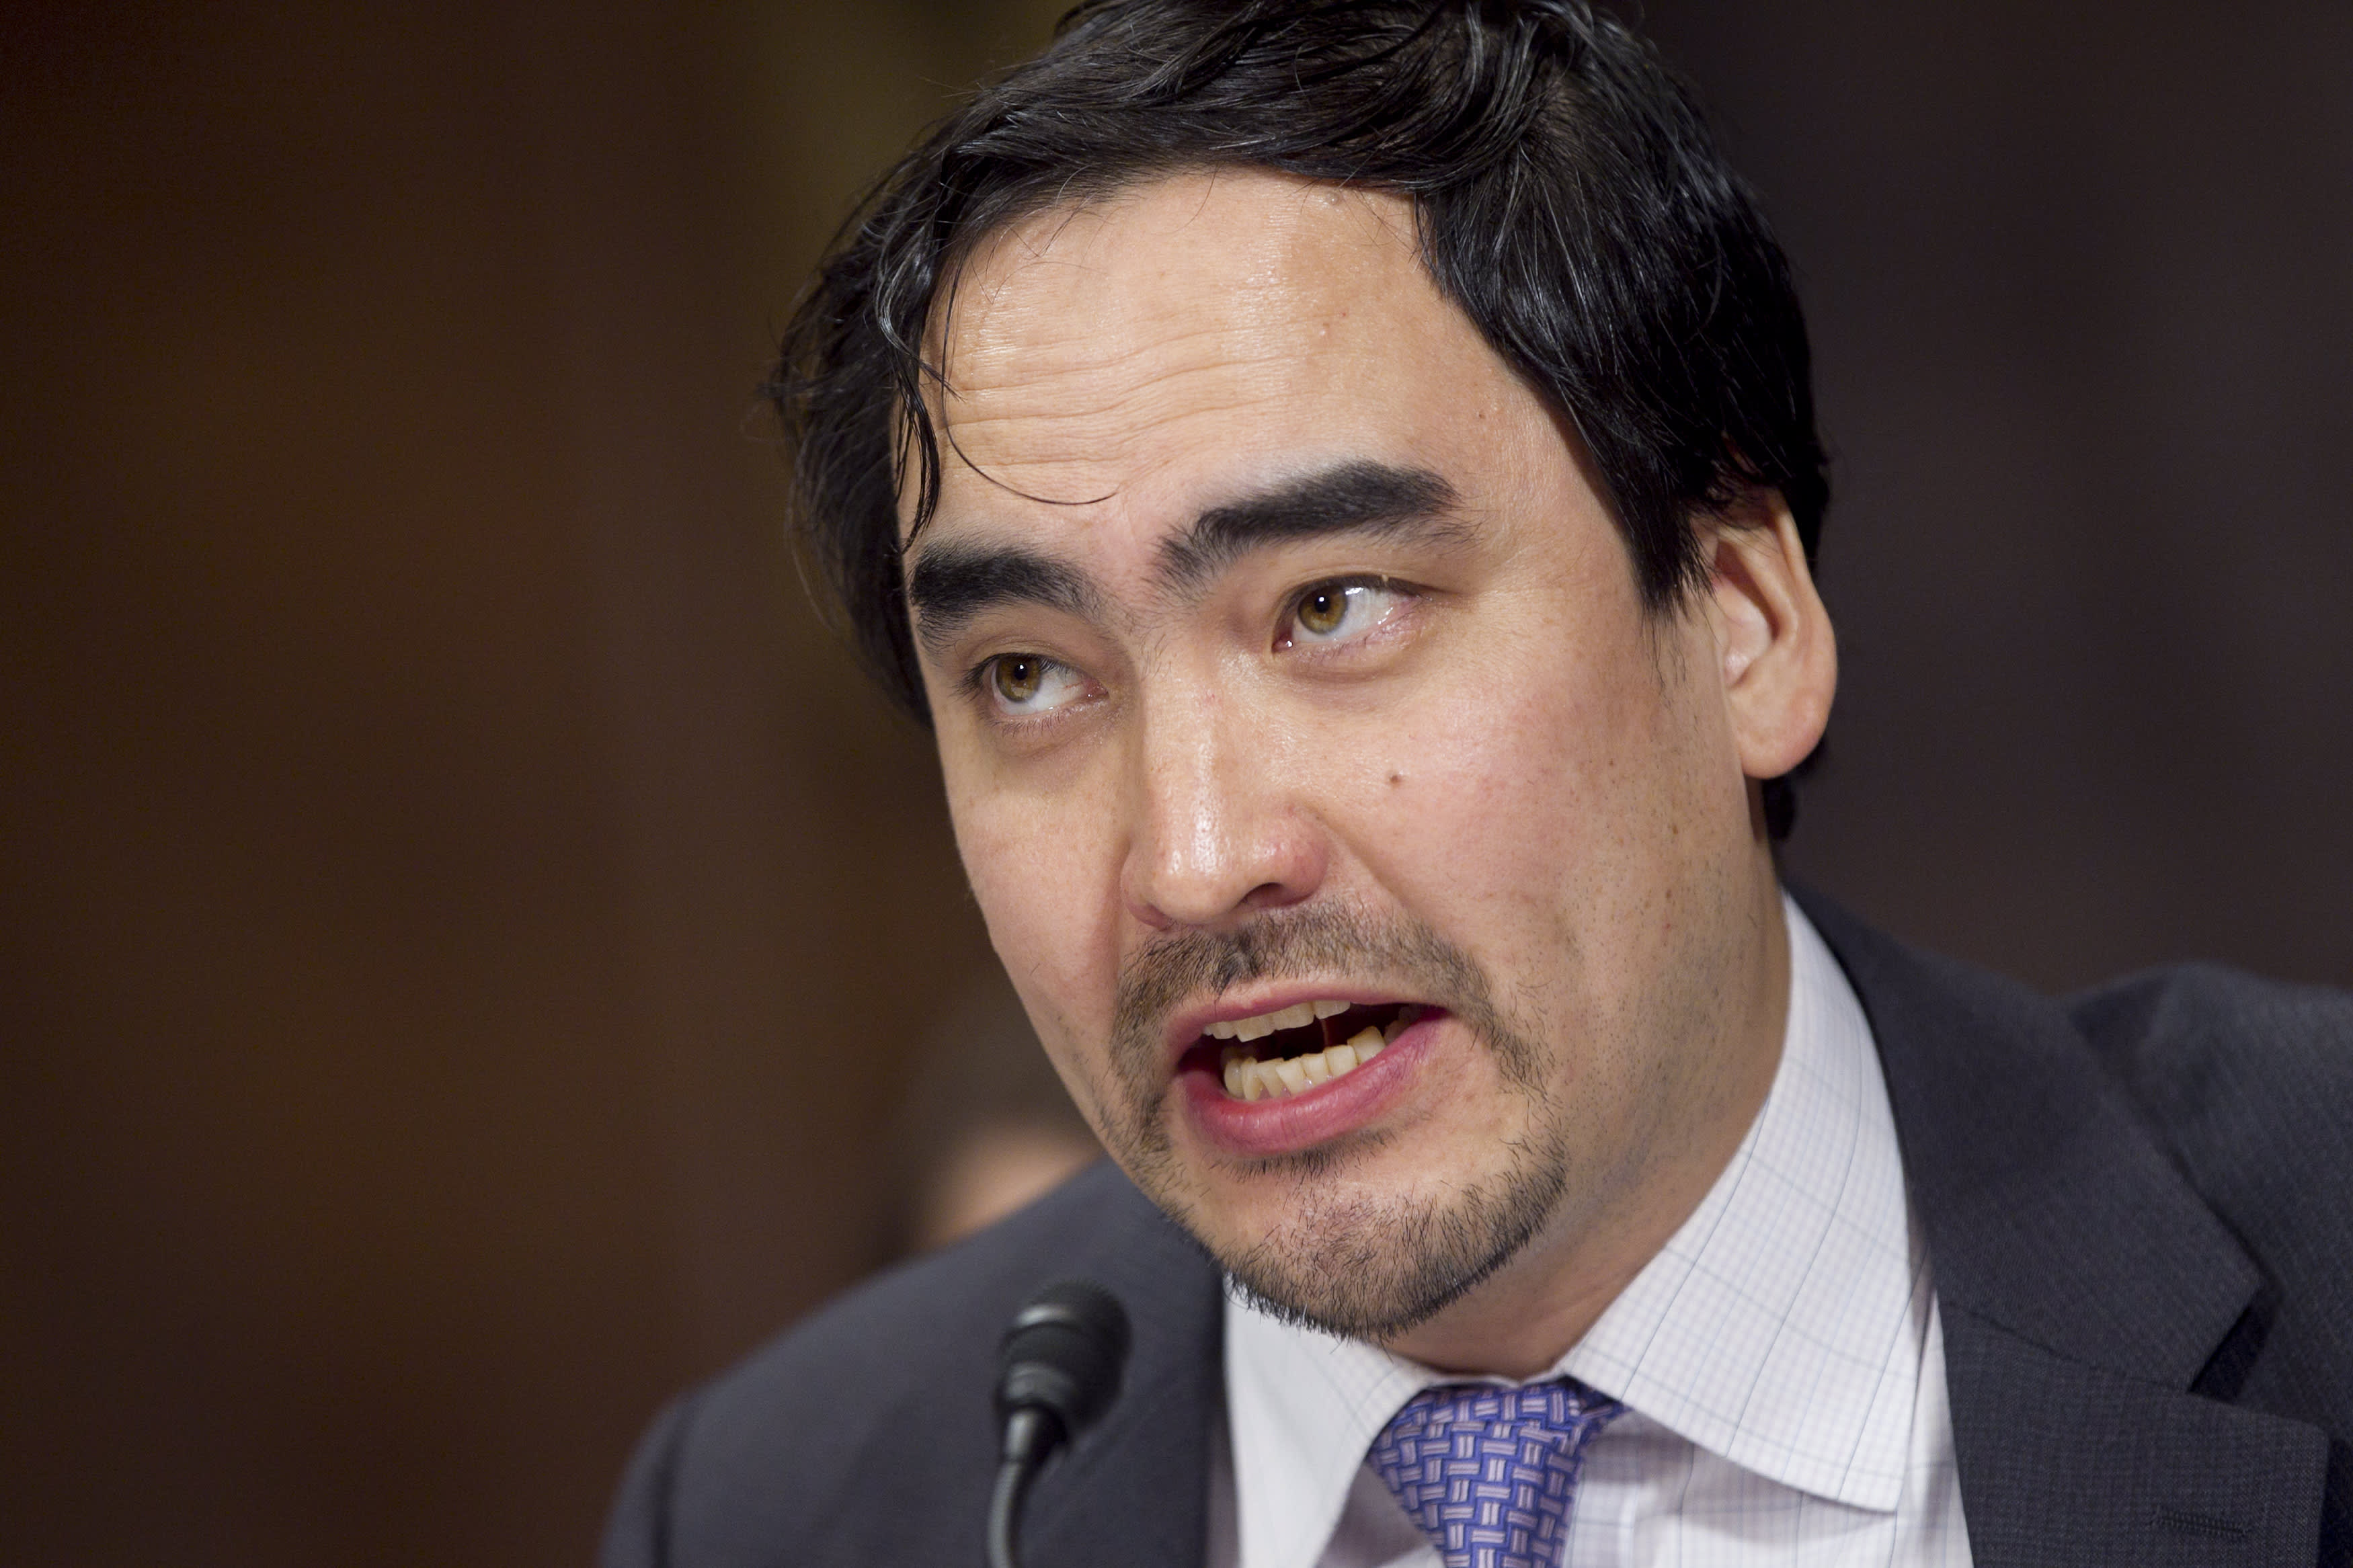 Big Tech critic Tim Wu joins Biden administration to work on competition policy – CNBC